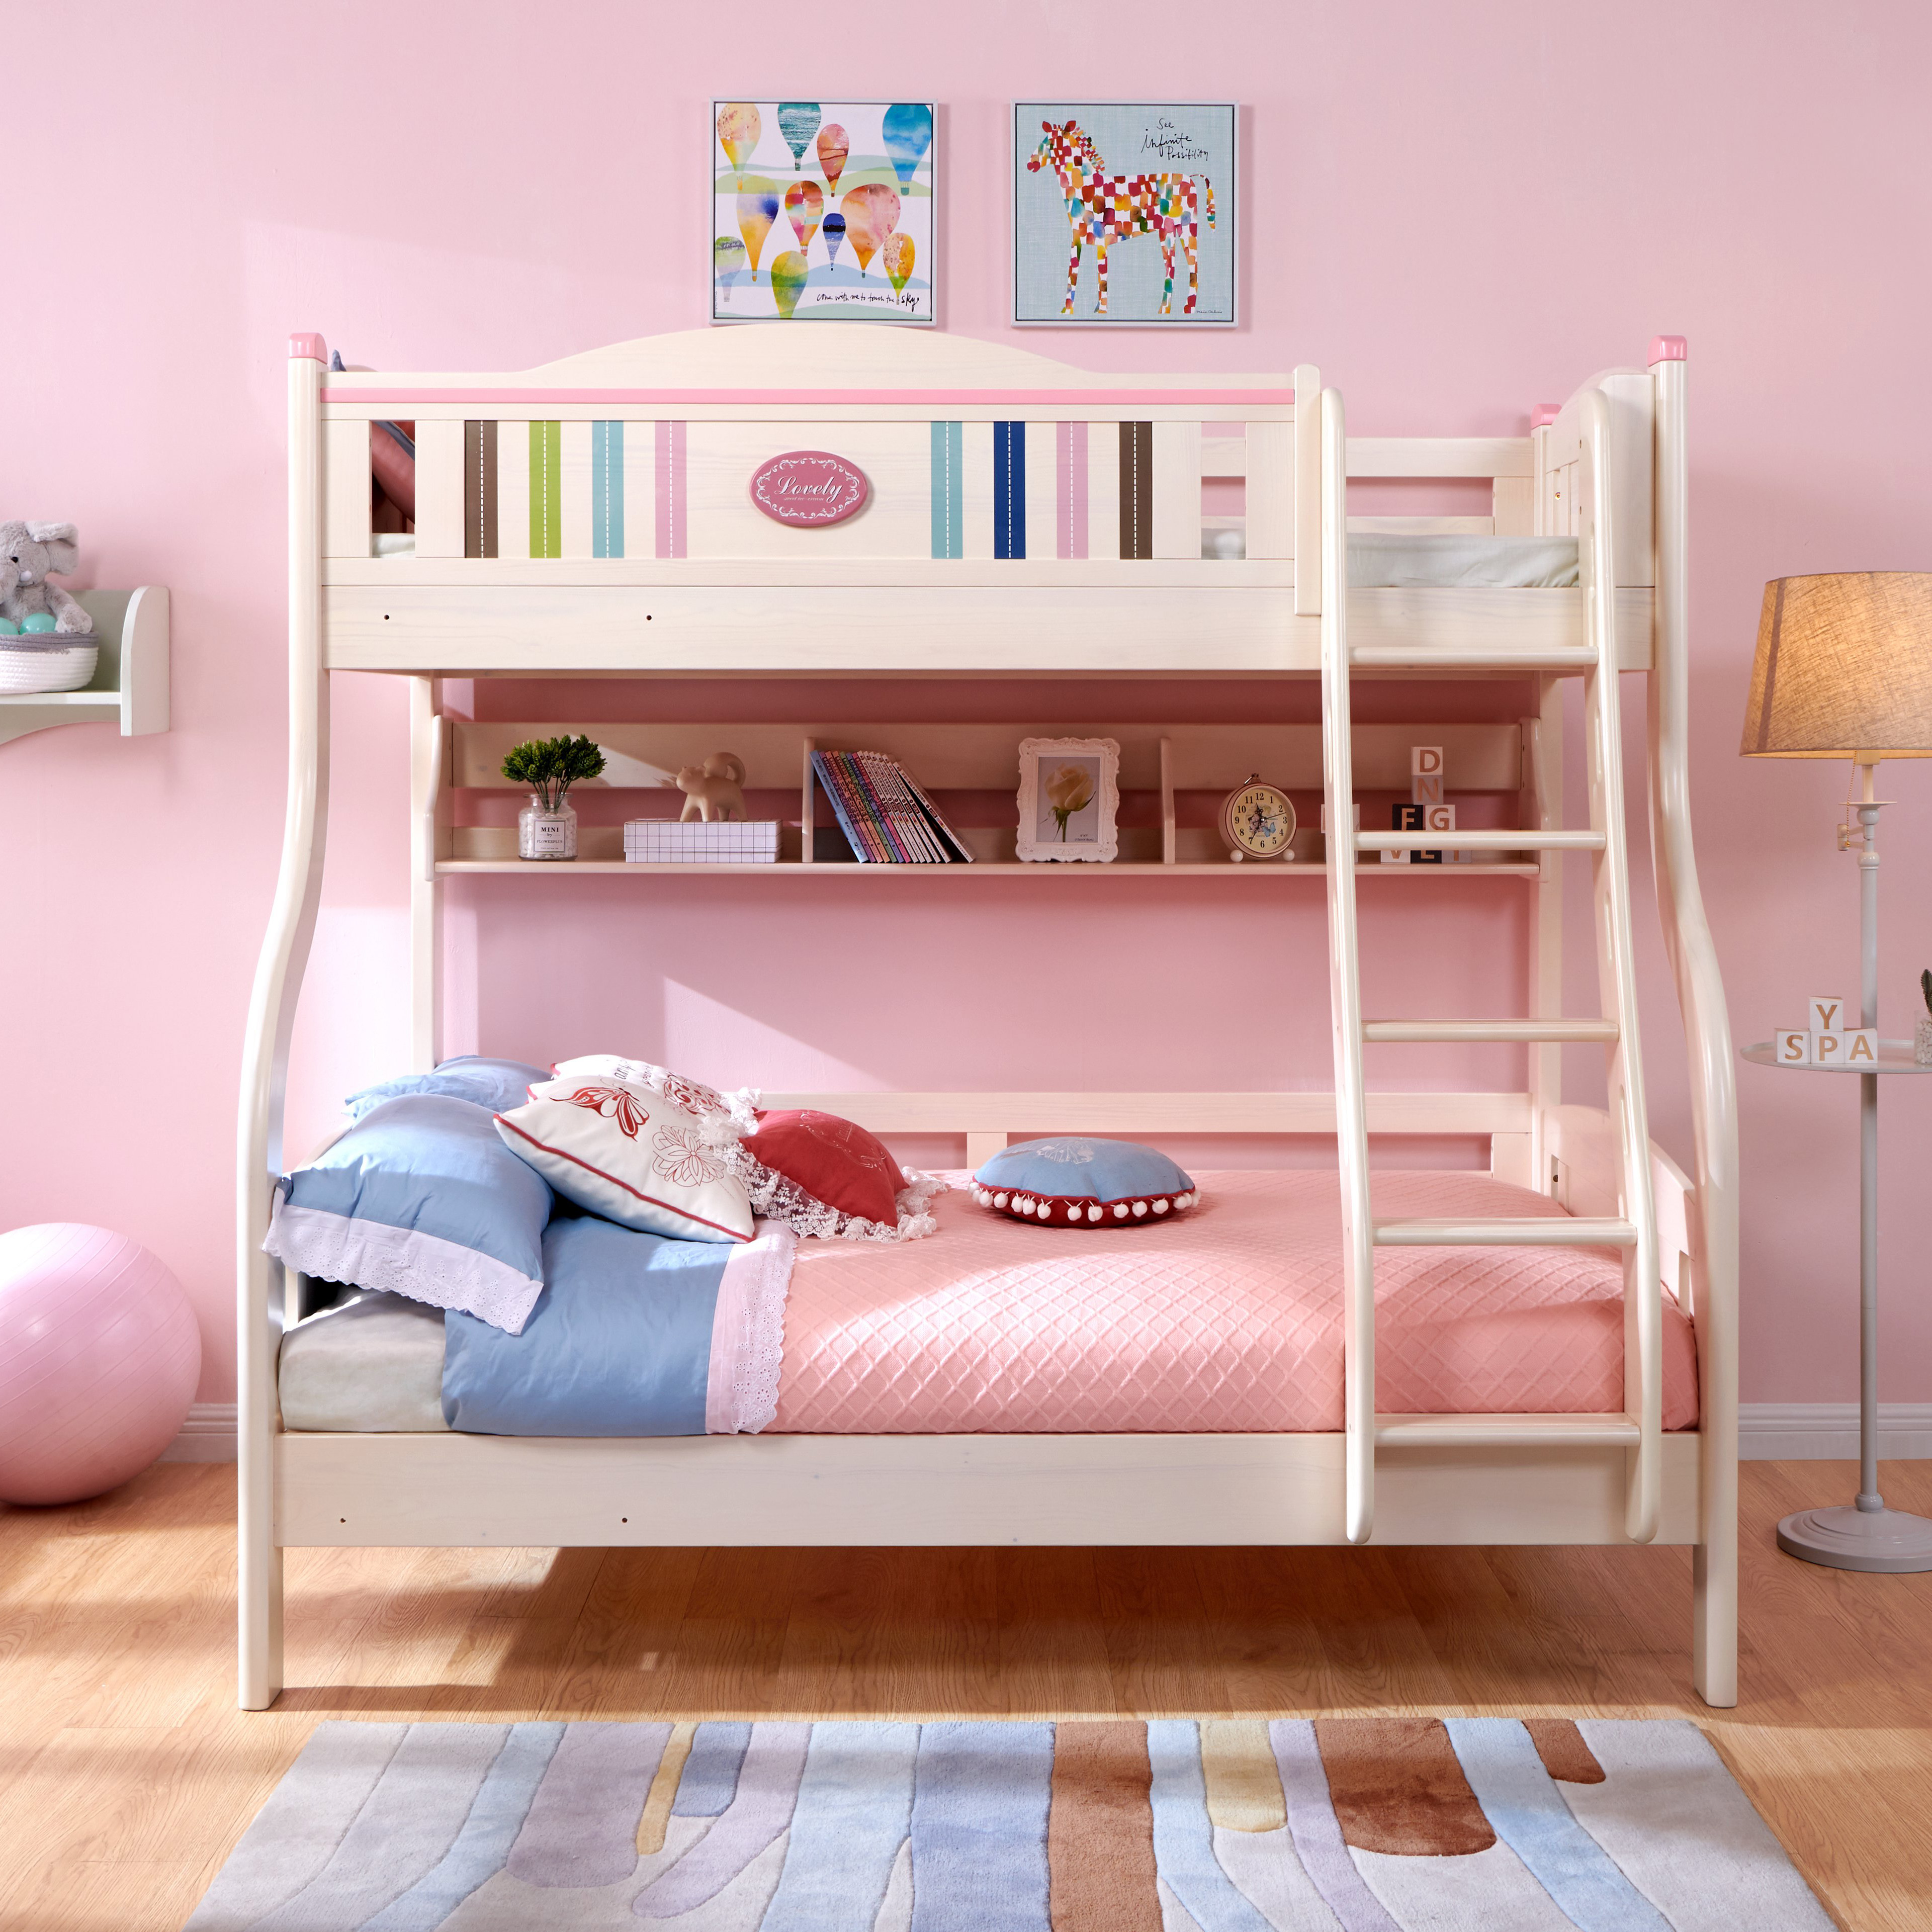 New Design China Manufacturer Wood Bunk Bed For Kid To Sleep Kids Bedroom  Furniture Bunk Bed Princess Bed With Stairs - Buy Twin Double Deck Bed,Kids  ...